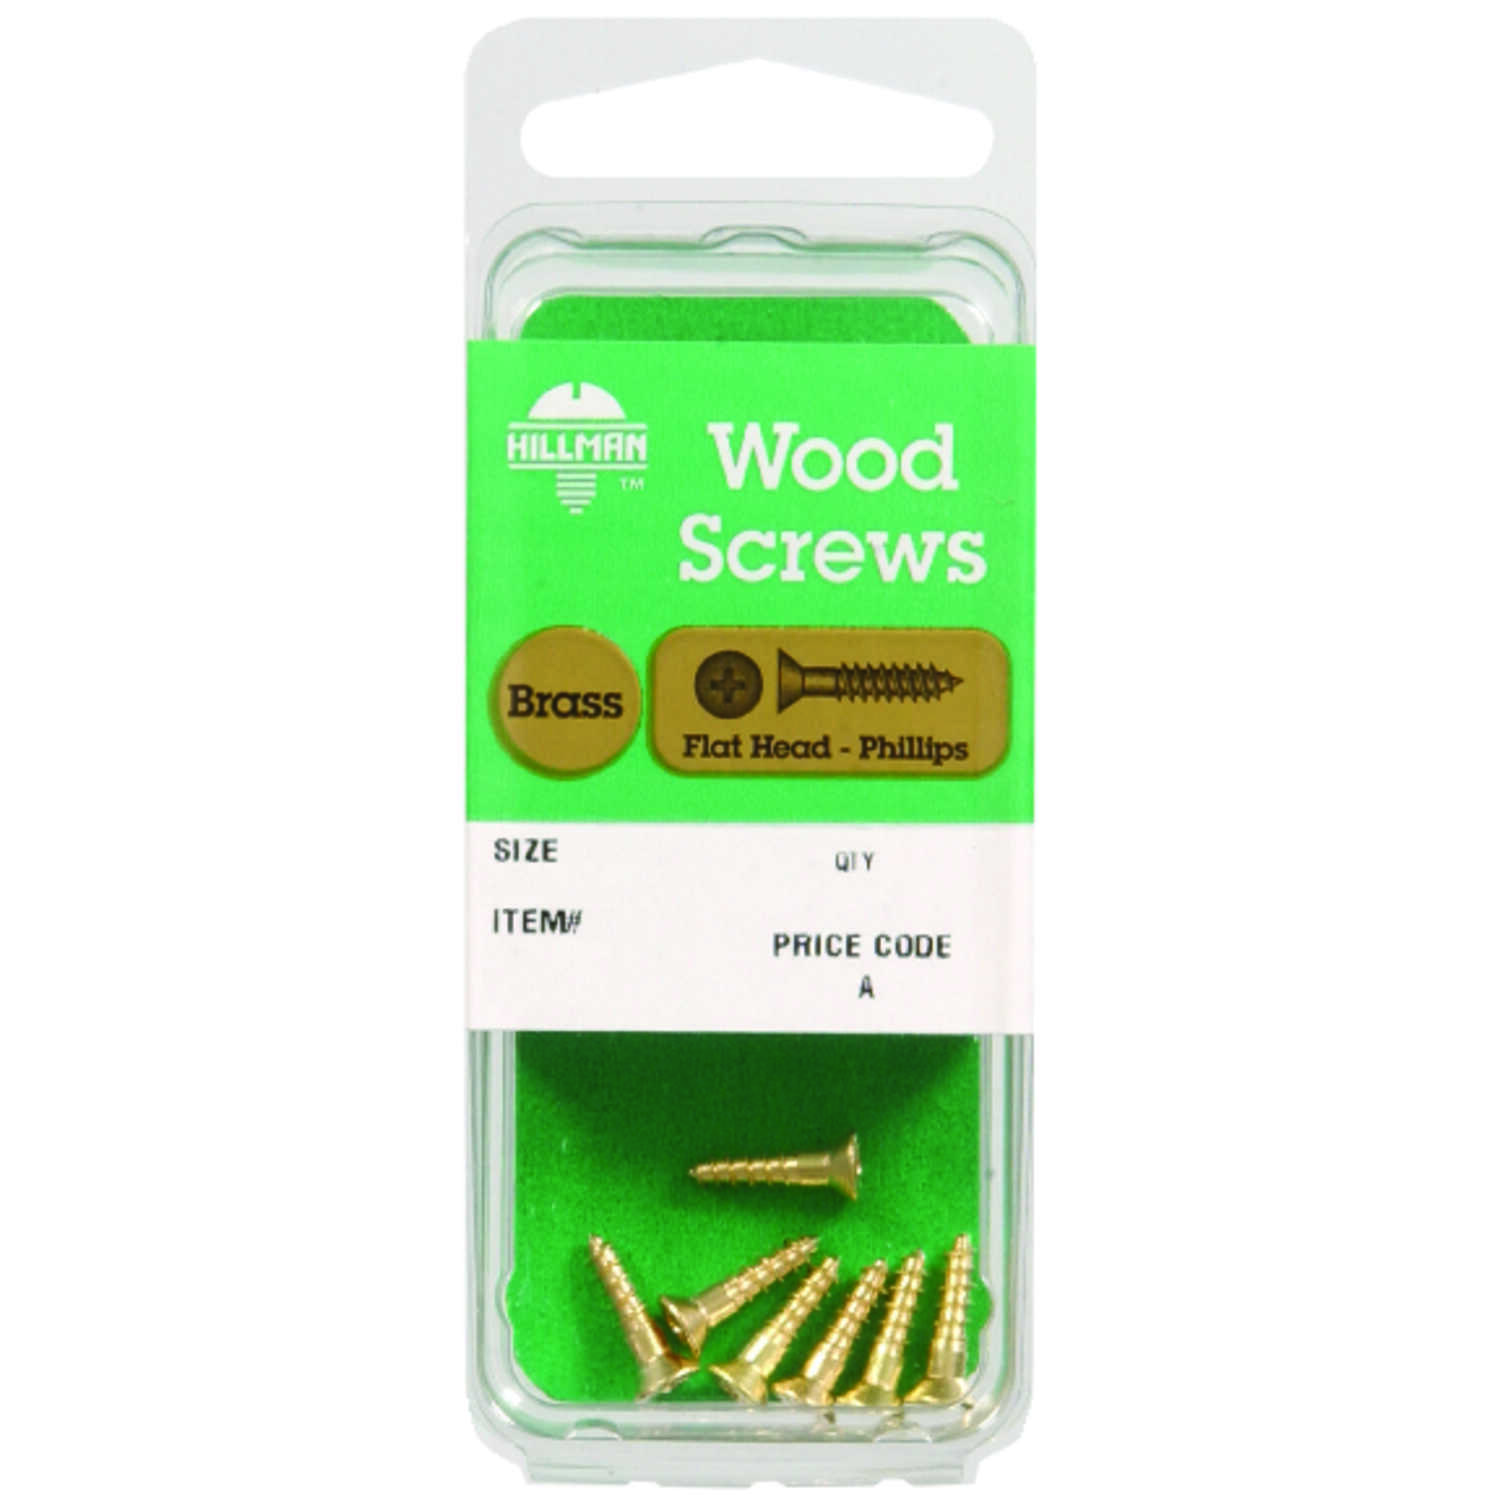 HILLMAN  No. 6   x 1-1/4 in. L Phillips  Flat Head Brass  Wood Screws  4 pk